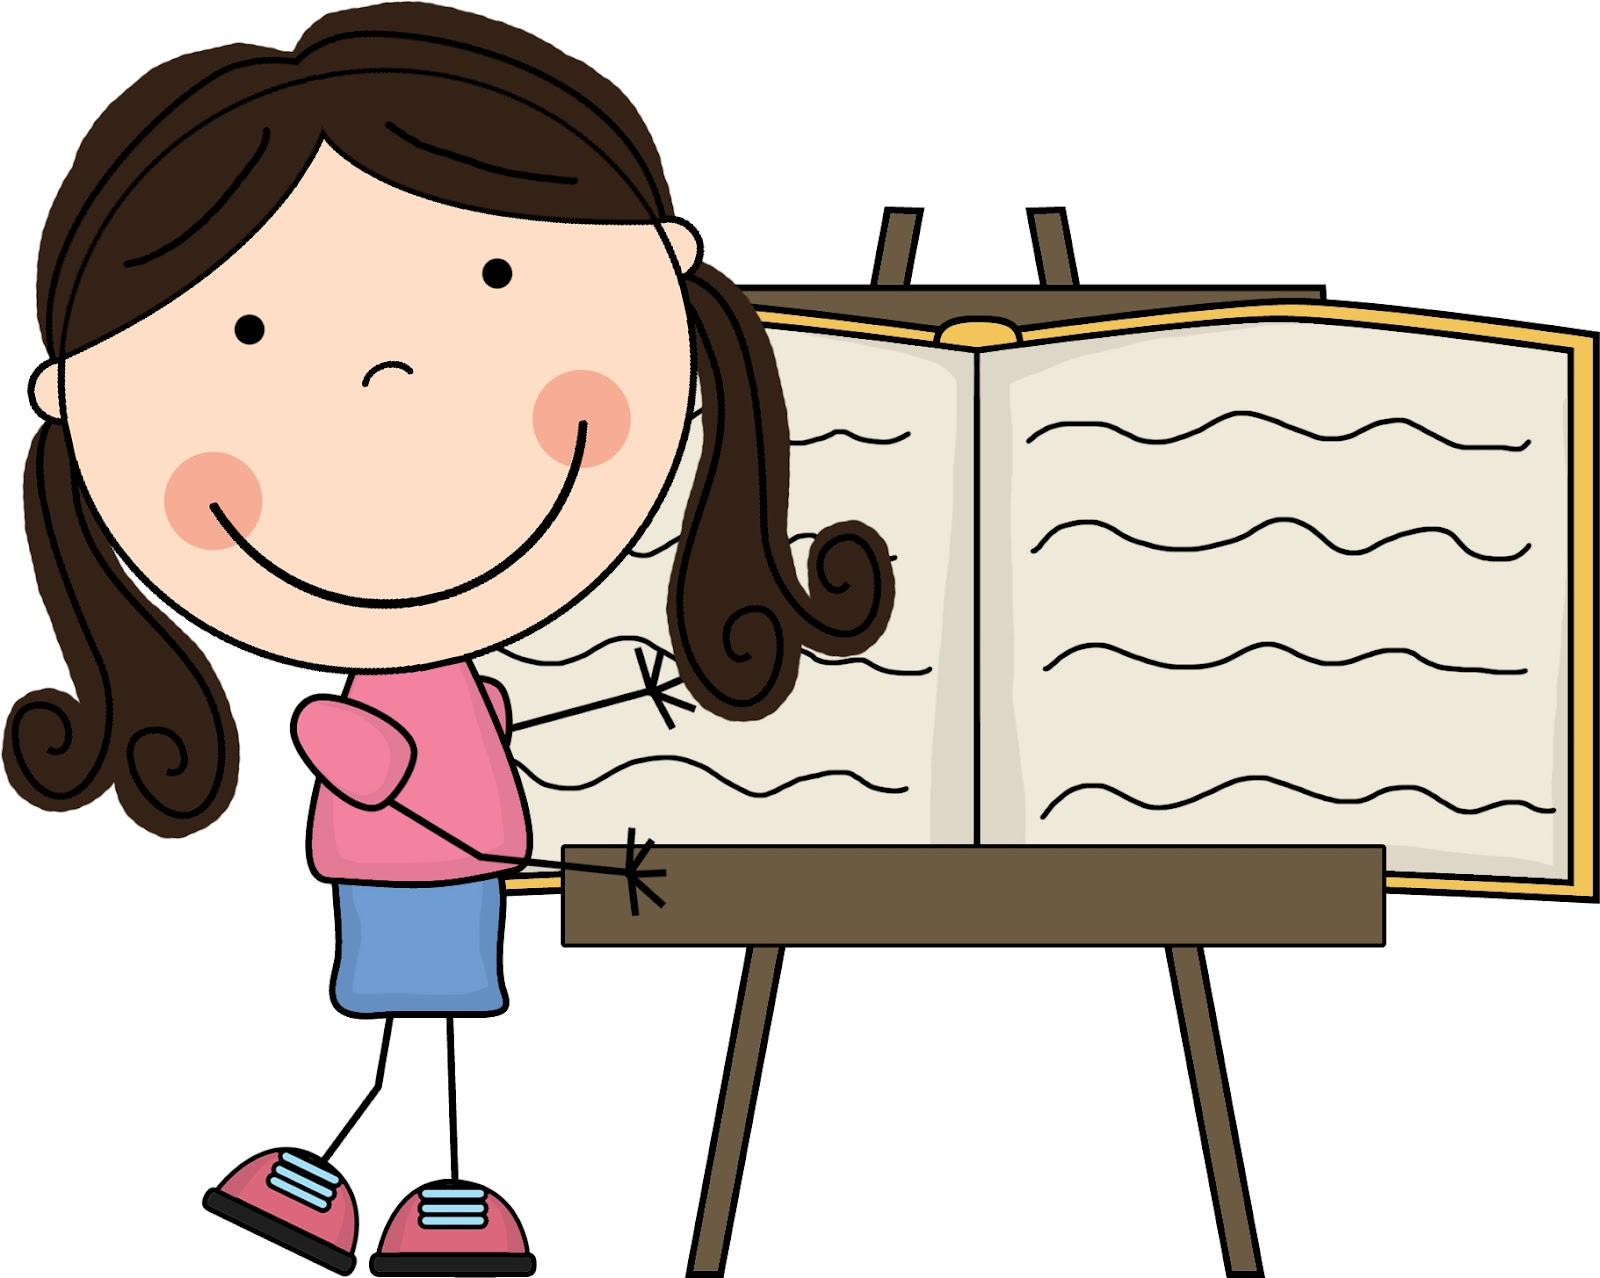 Clipart of a child charing his work.